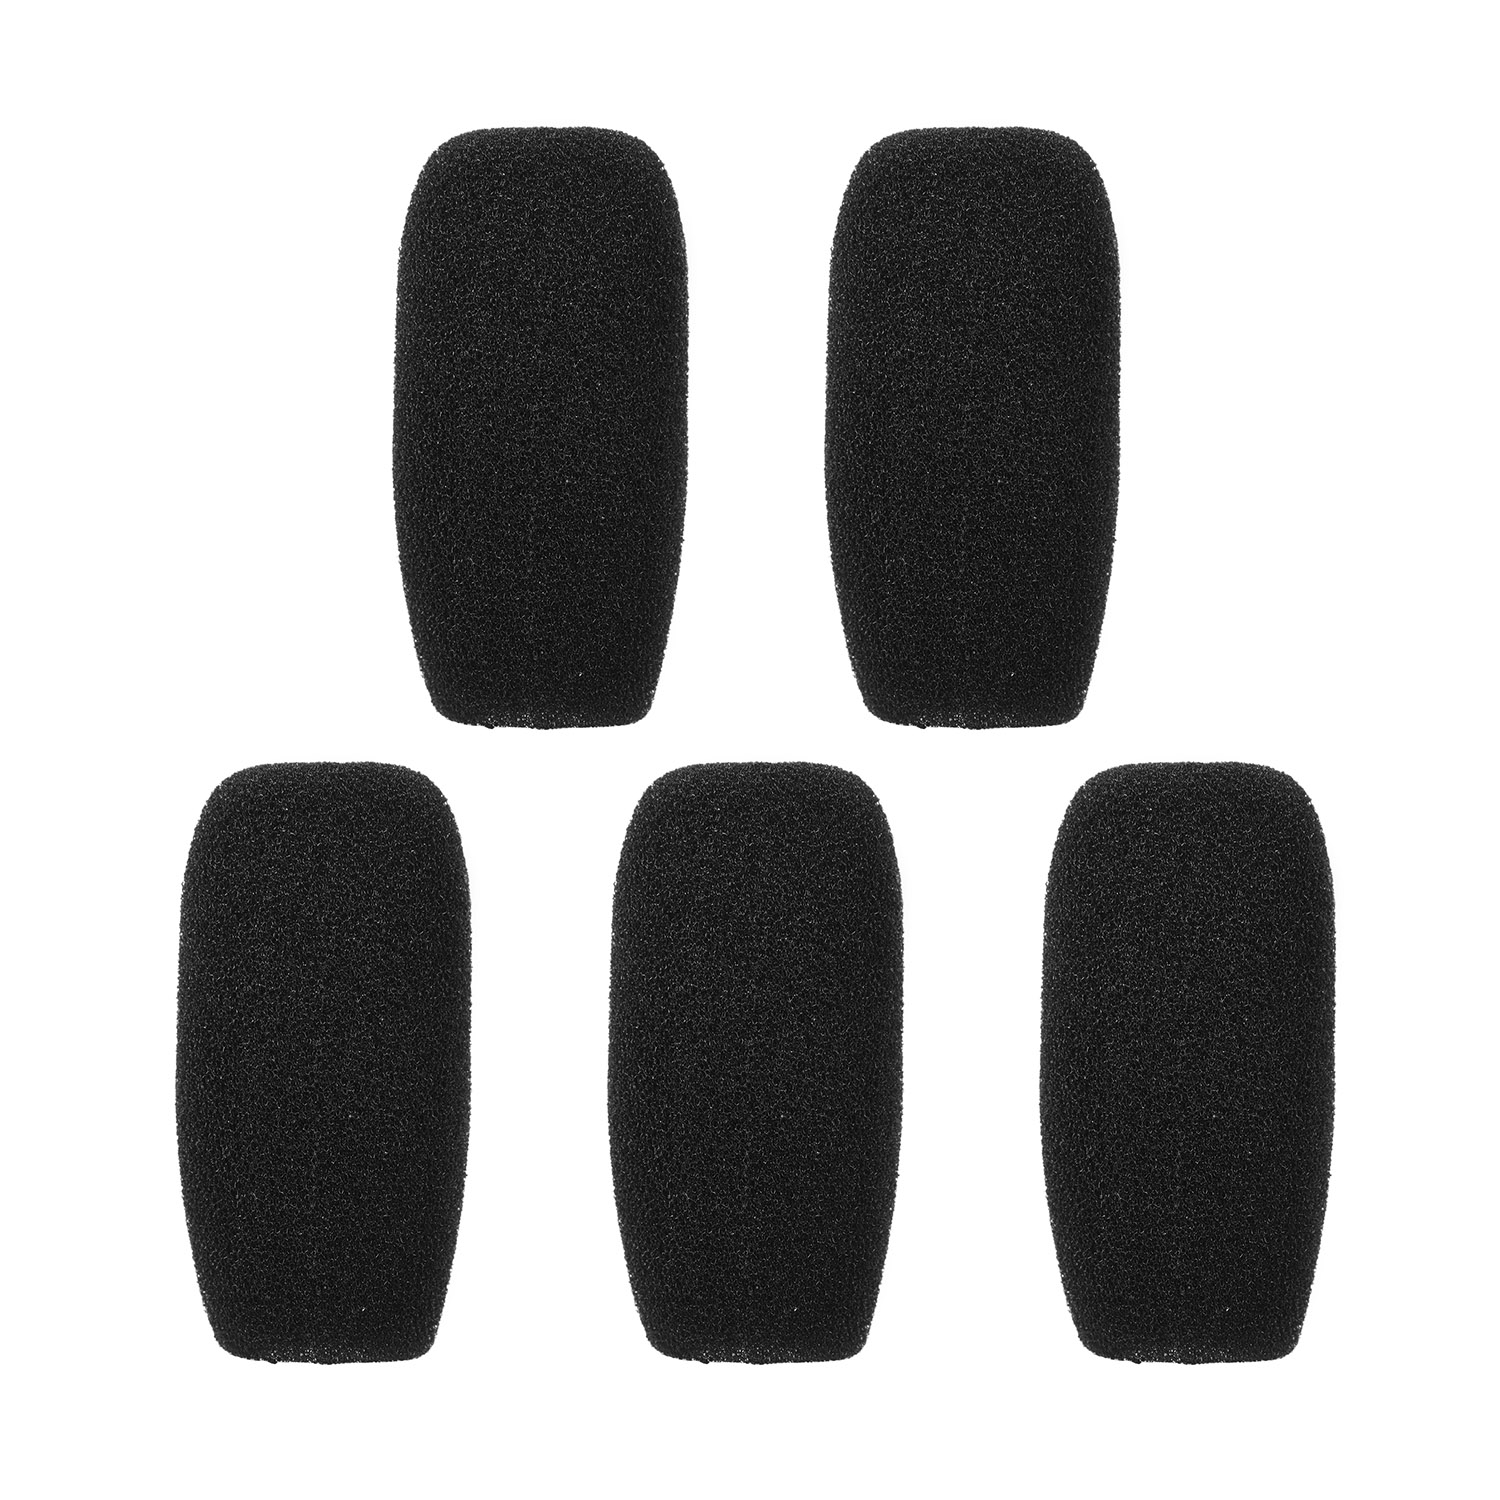 5pcs/lot Mic Cover Microphone Windscreen Windshied Headset Replacement Telephone Headset Foam Microphone Cover